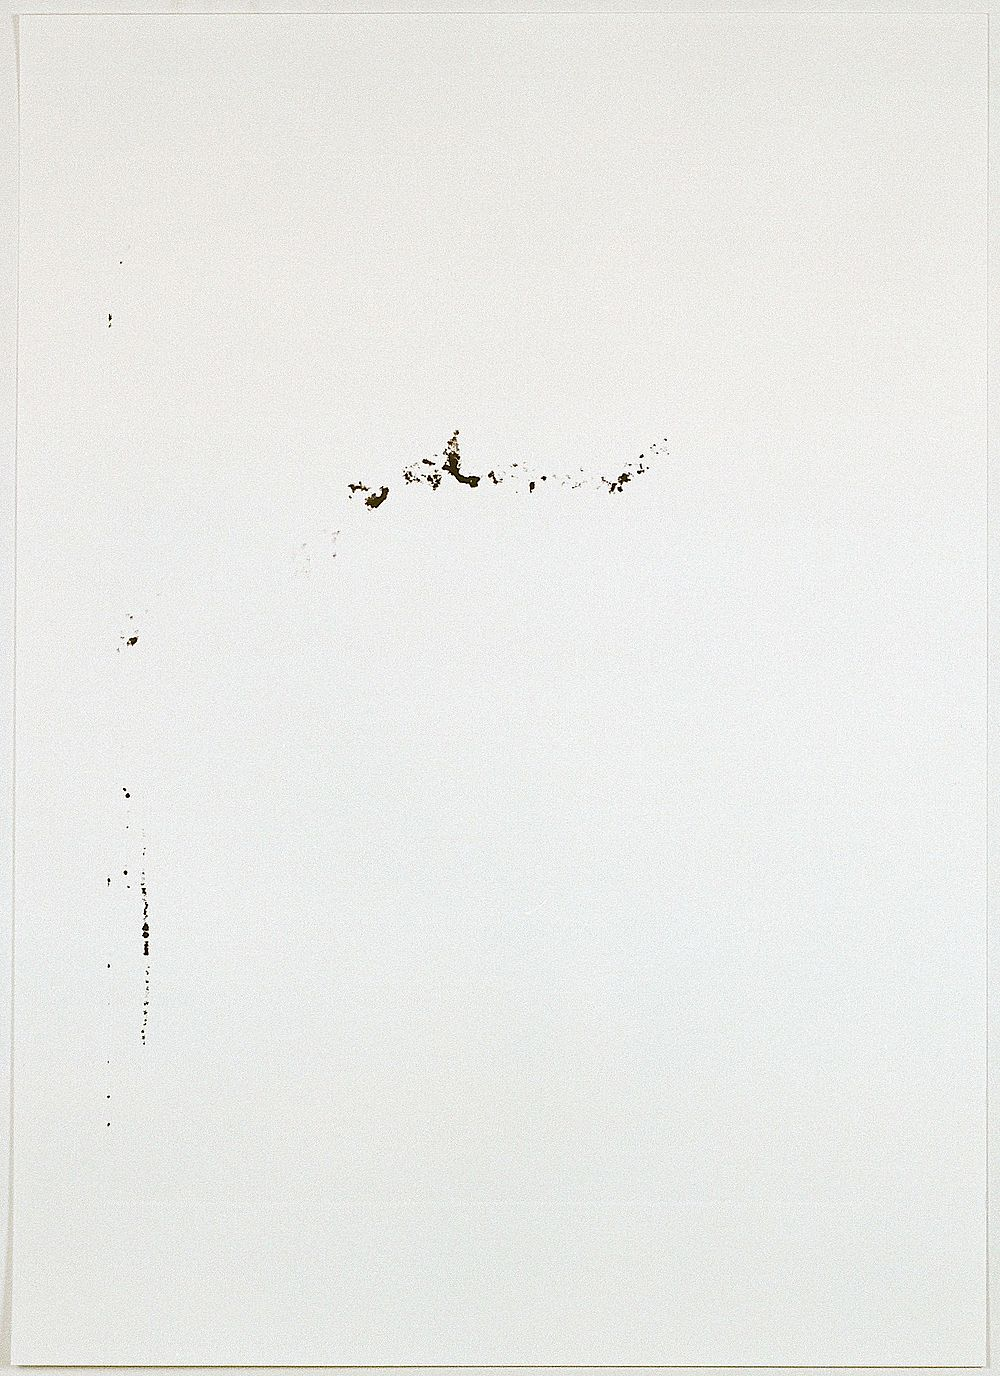 Notes For a Landscape , Monotype On Blotting Paper, 70x100cm, 2013